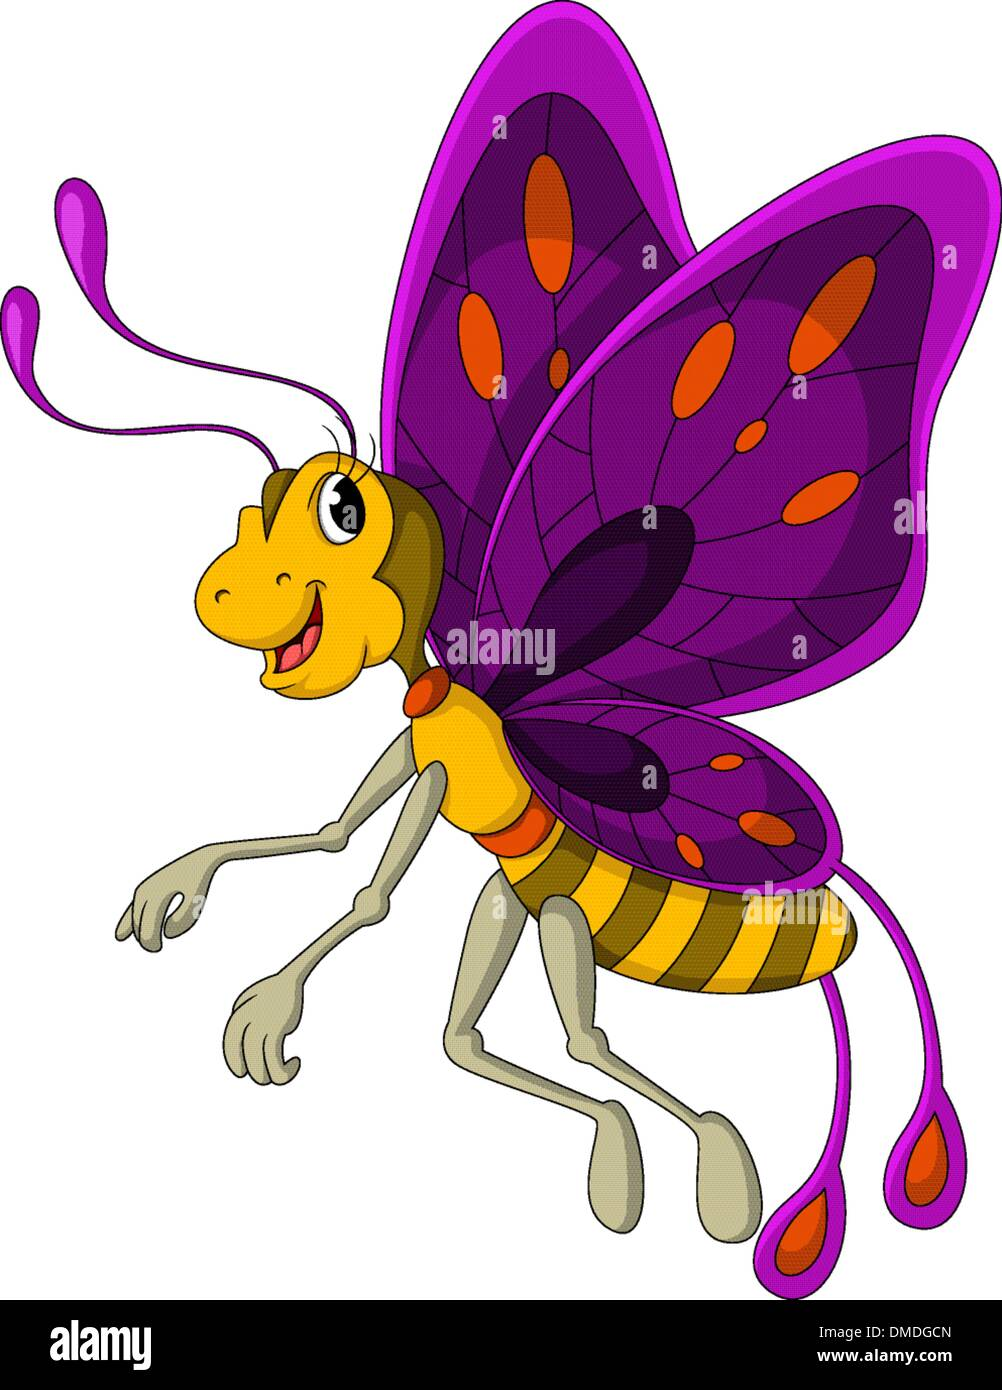 Butterfly Bug Character Cartoon Stockfotos & Butterfly Bug Character ...